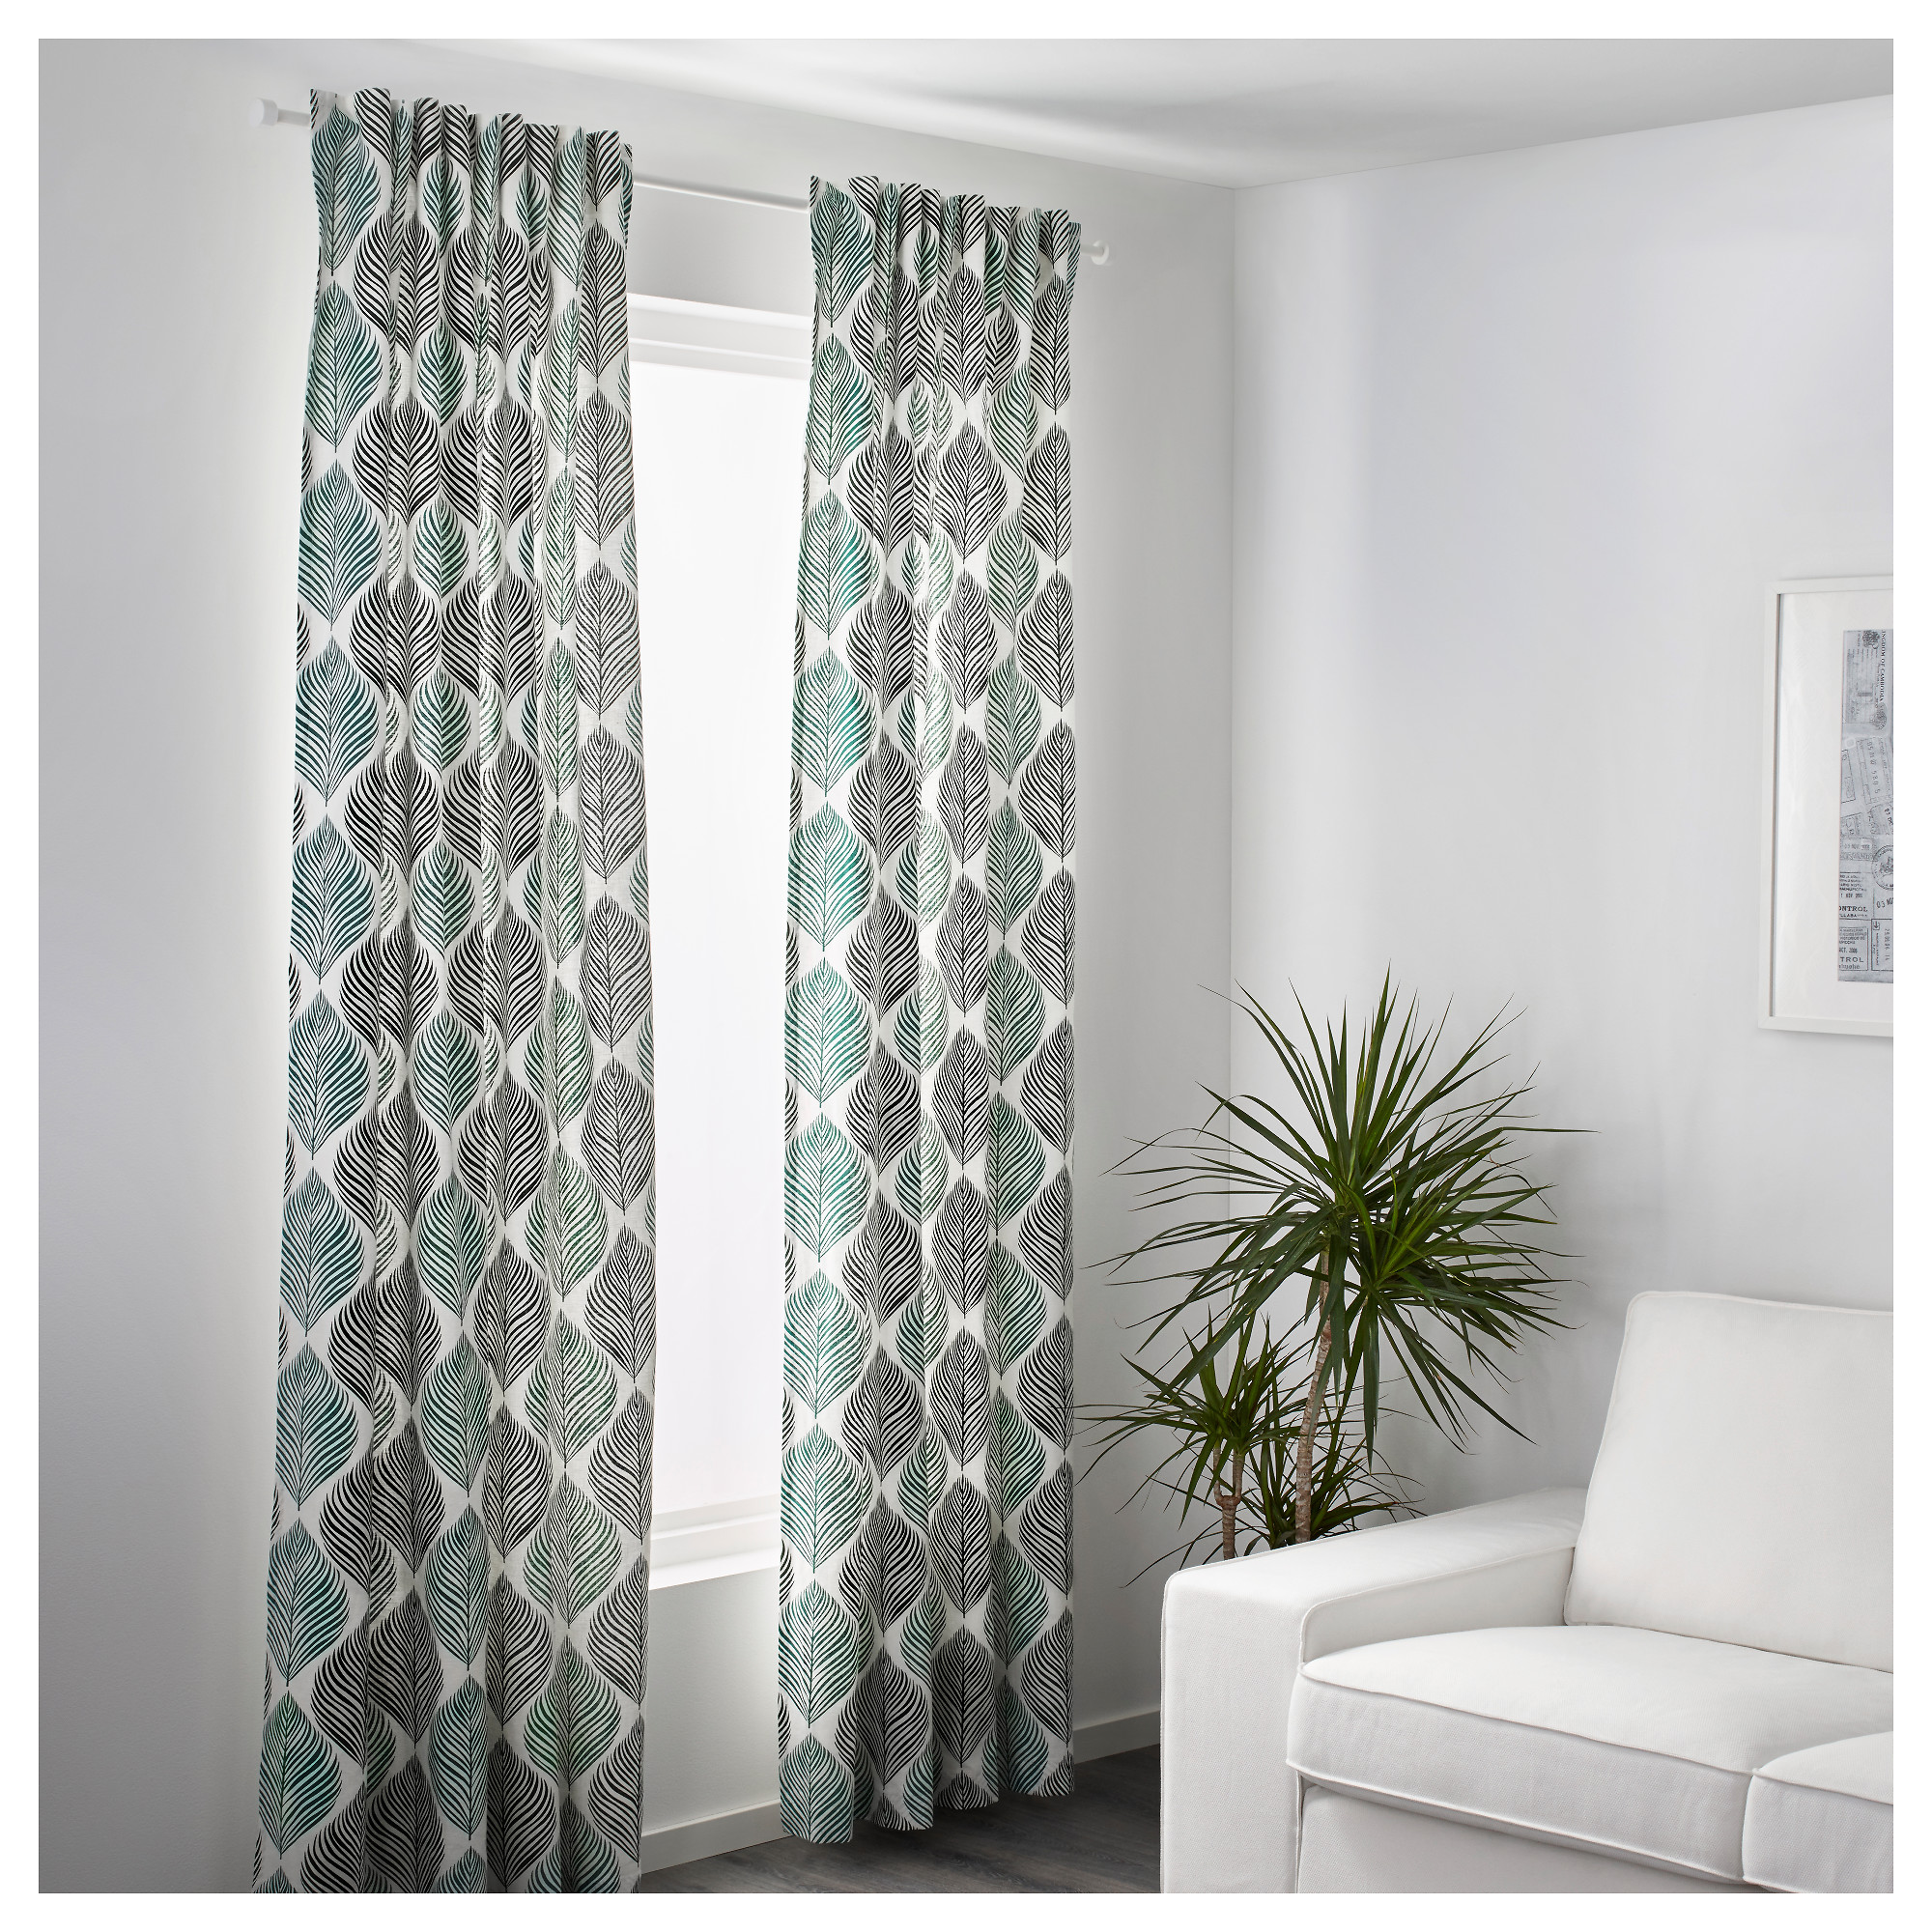 tfile teal curtains and bathroom shower curtain grey inspiring target gray white inspiration yellow of uncategorized trend picture